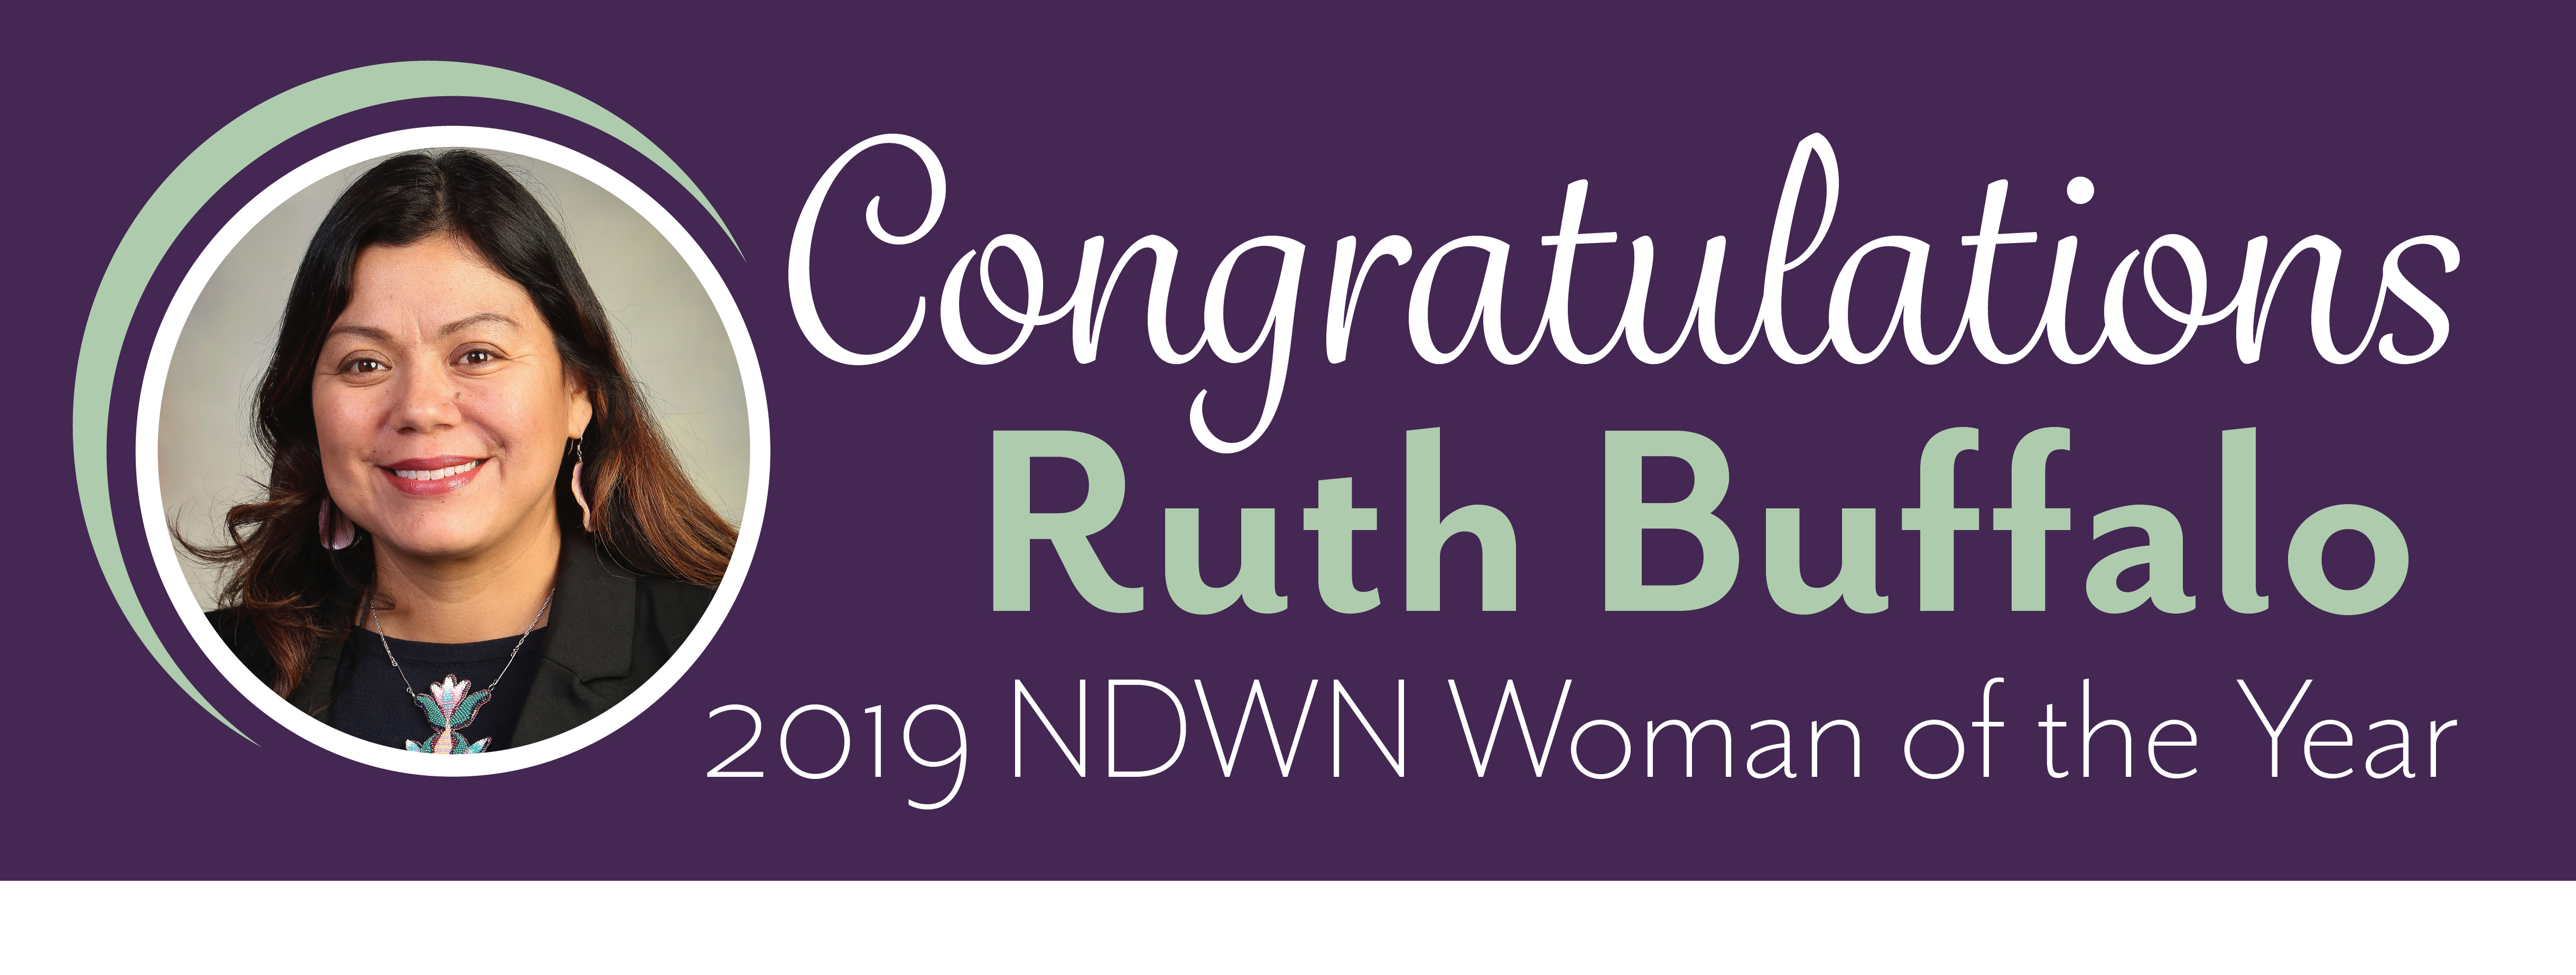 Ruth Buffalo Named Woman of the Year by ND Women's Network